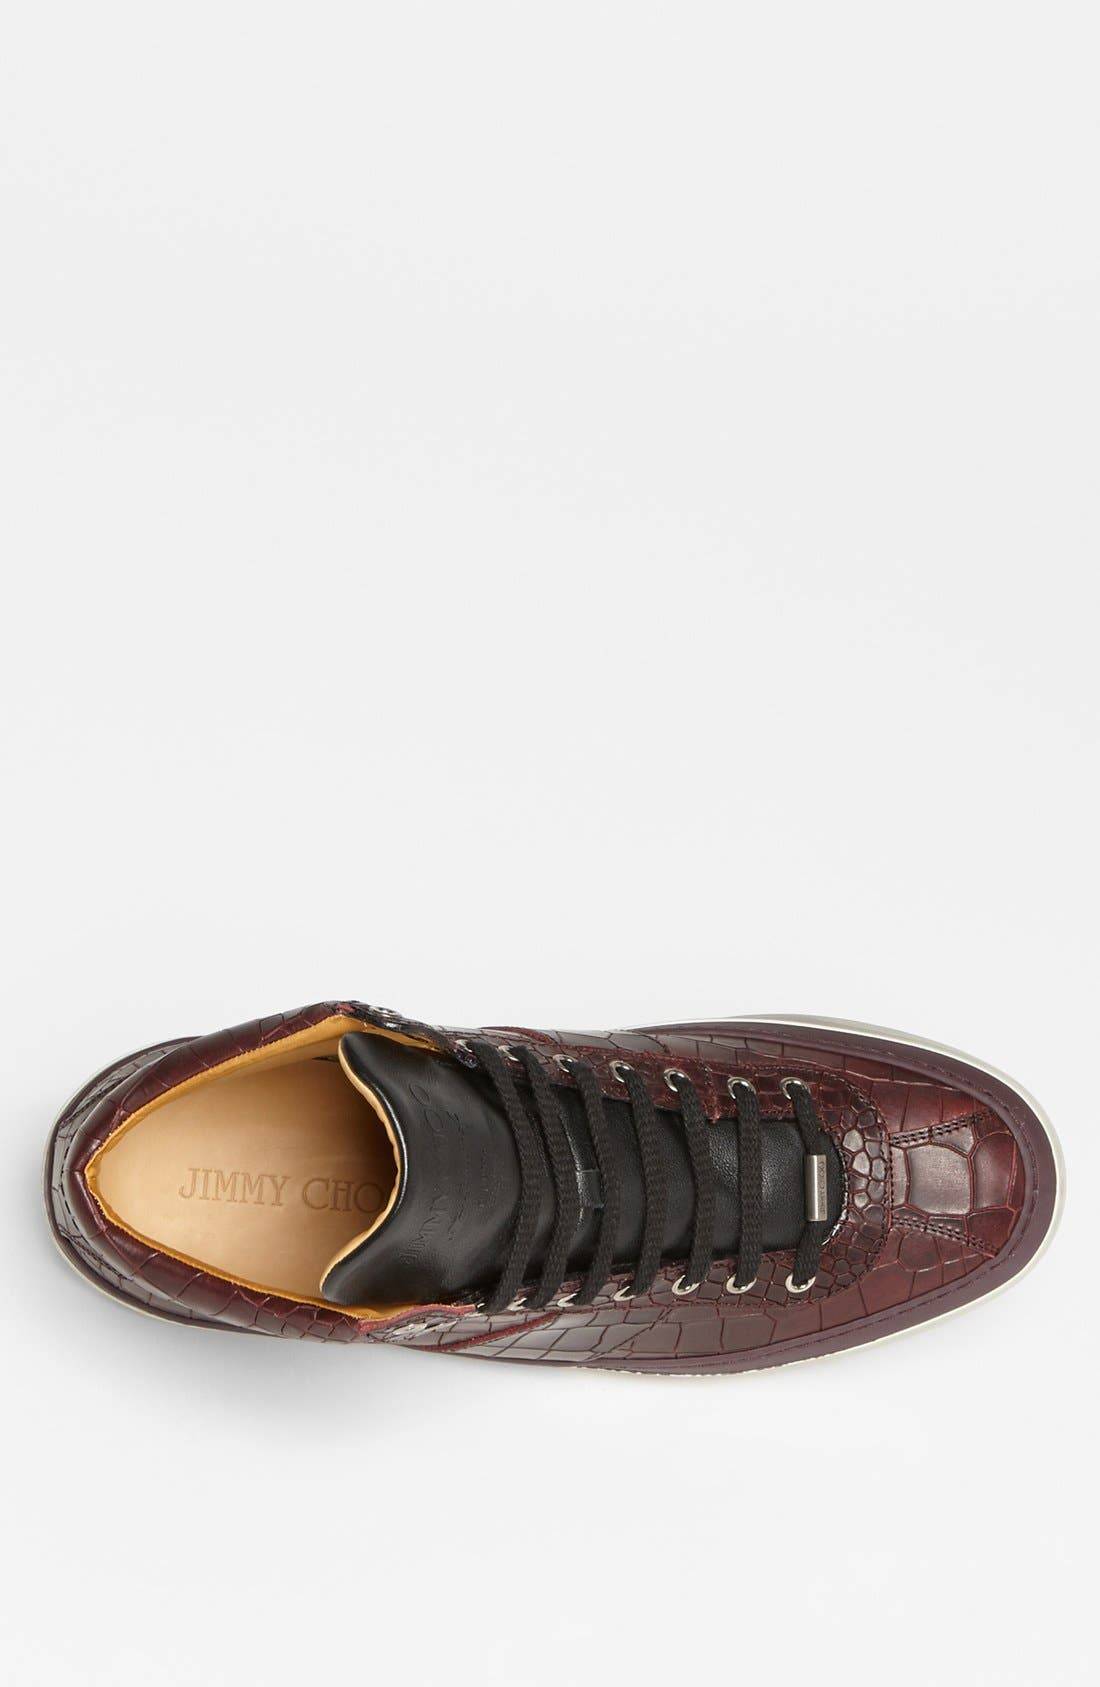 Belgravia High Top Sneaker,                             Alternate thumbnail 5, color,